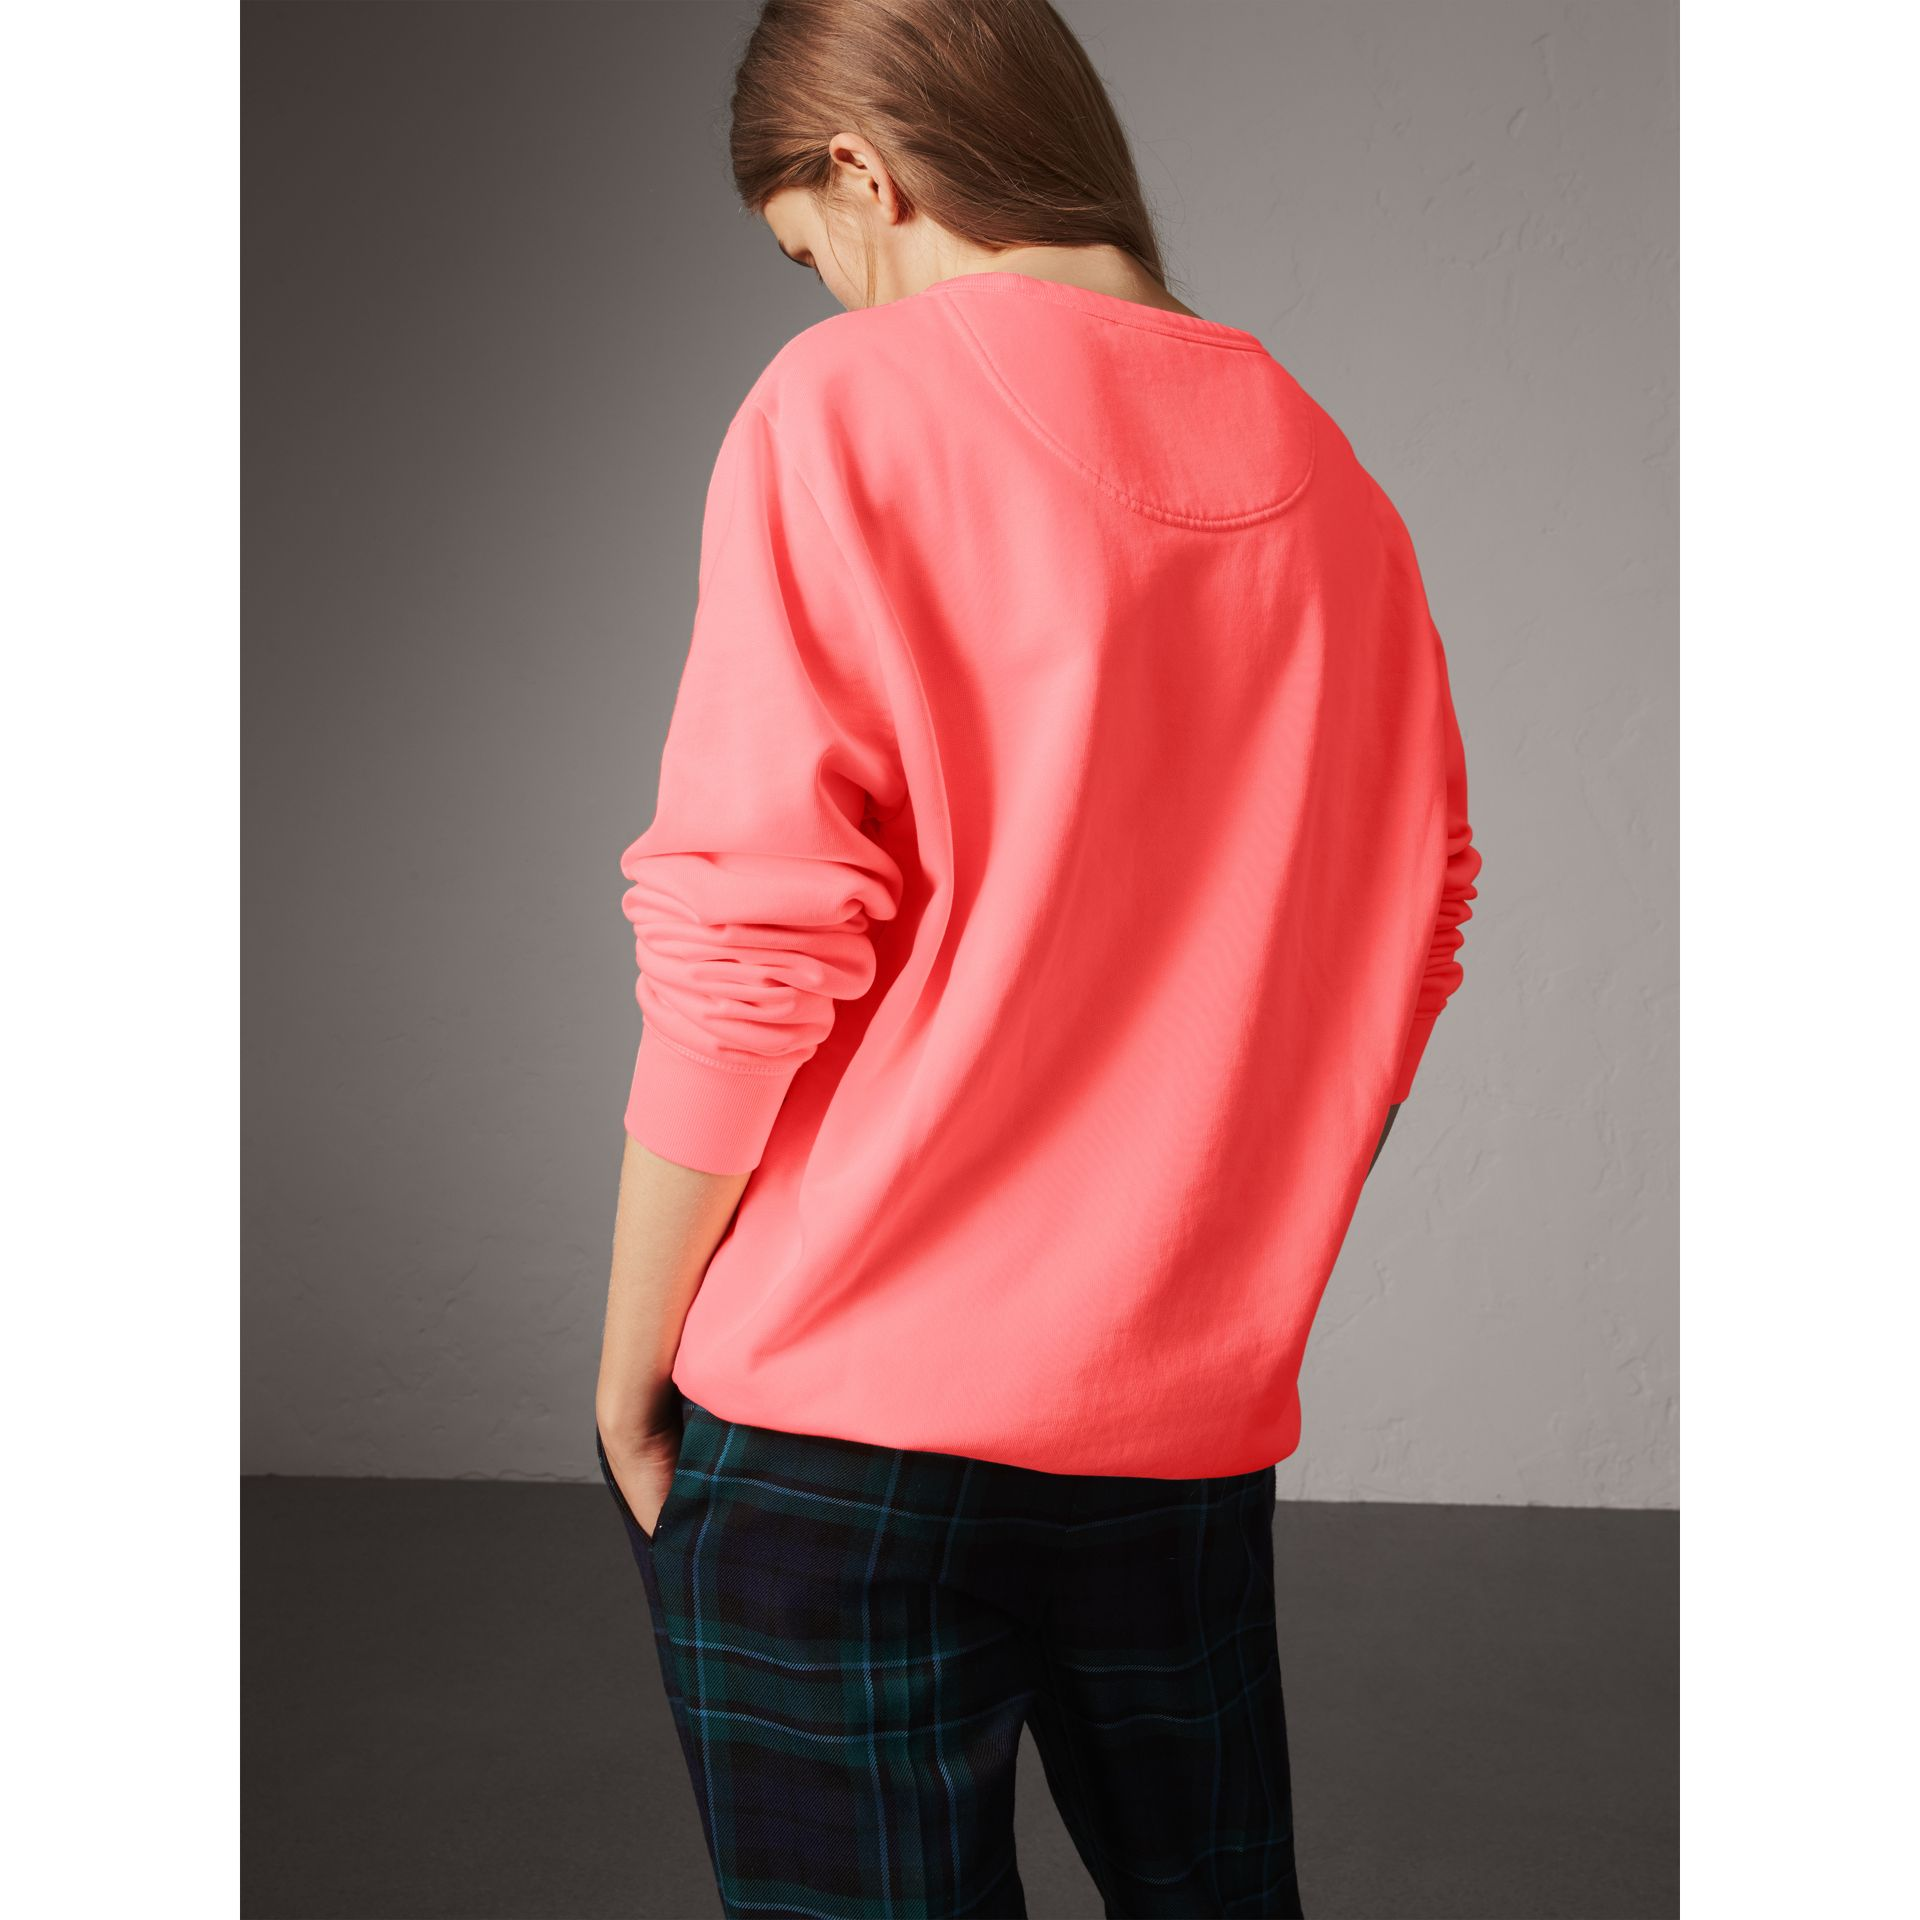 Doodle Print Cotton Sweatshirt in Bright Clementine - Women | Burberry - gallery image 2